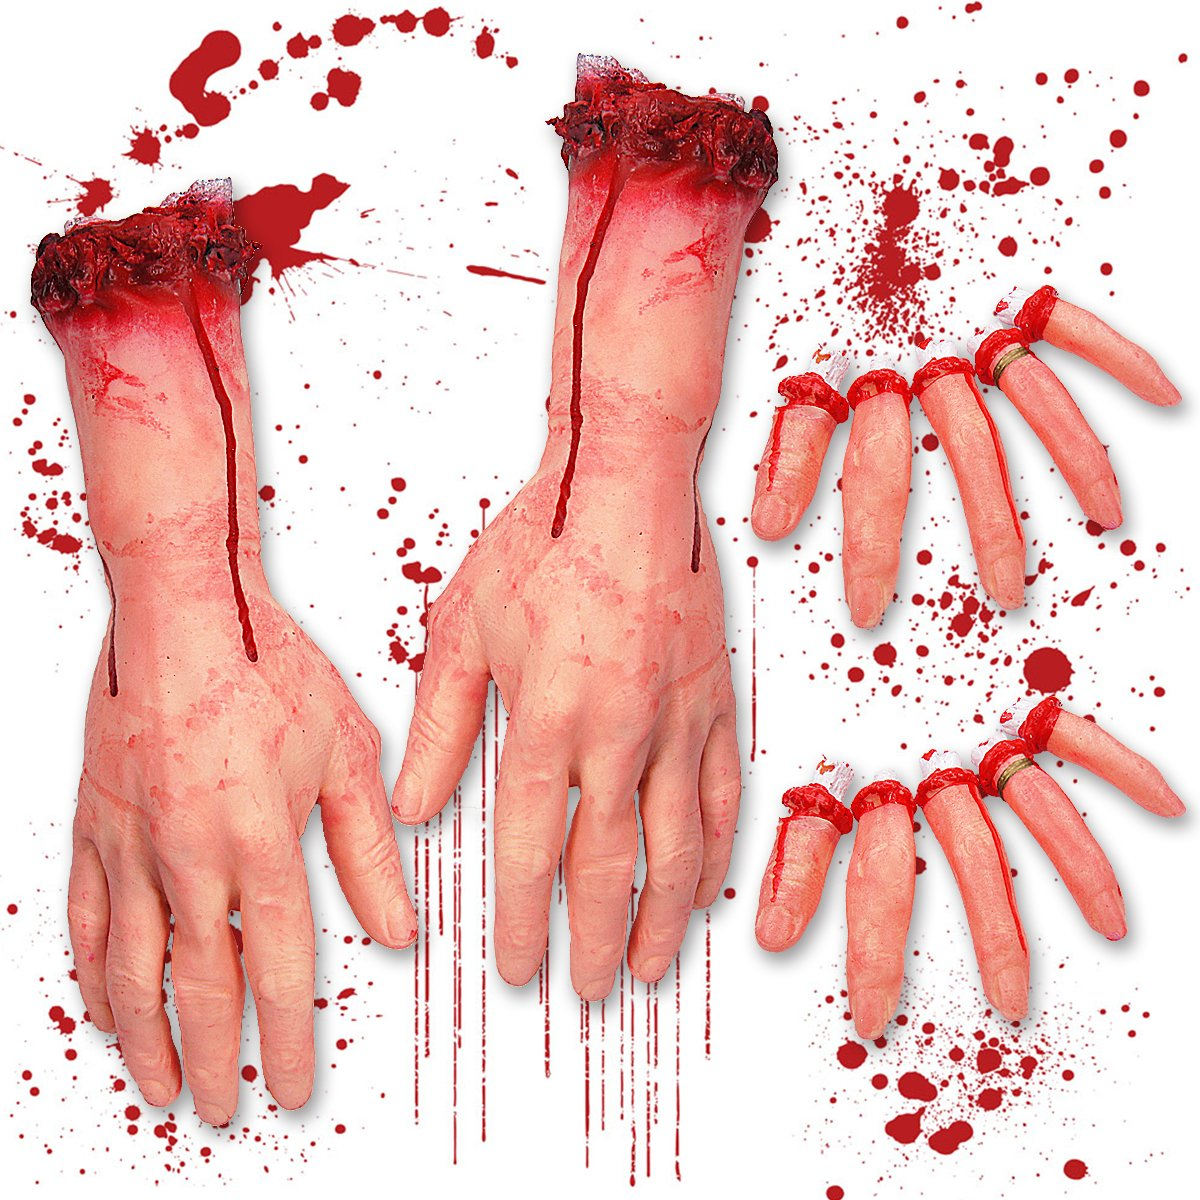 Amazon.com: Pawliss Halloween Body Parts, Severed Fake Arms Hands ...